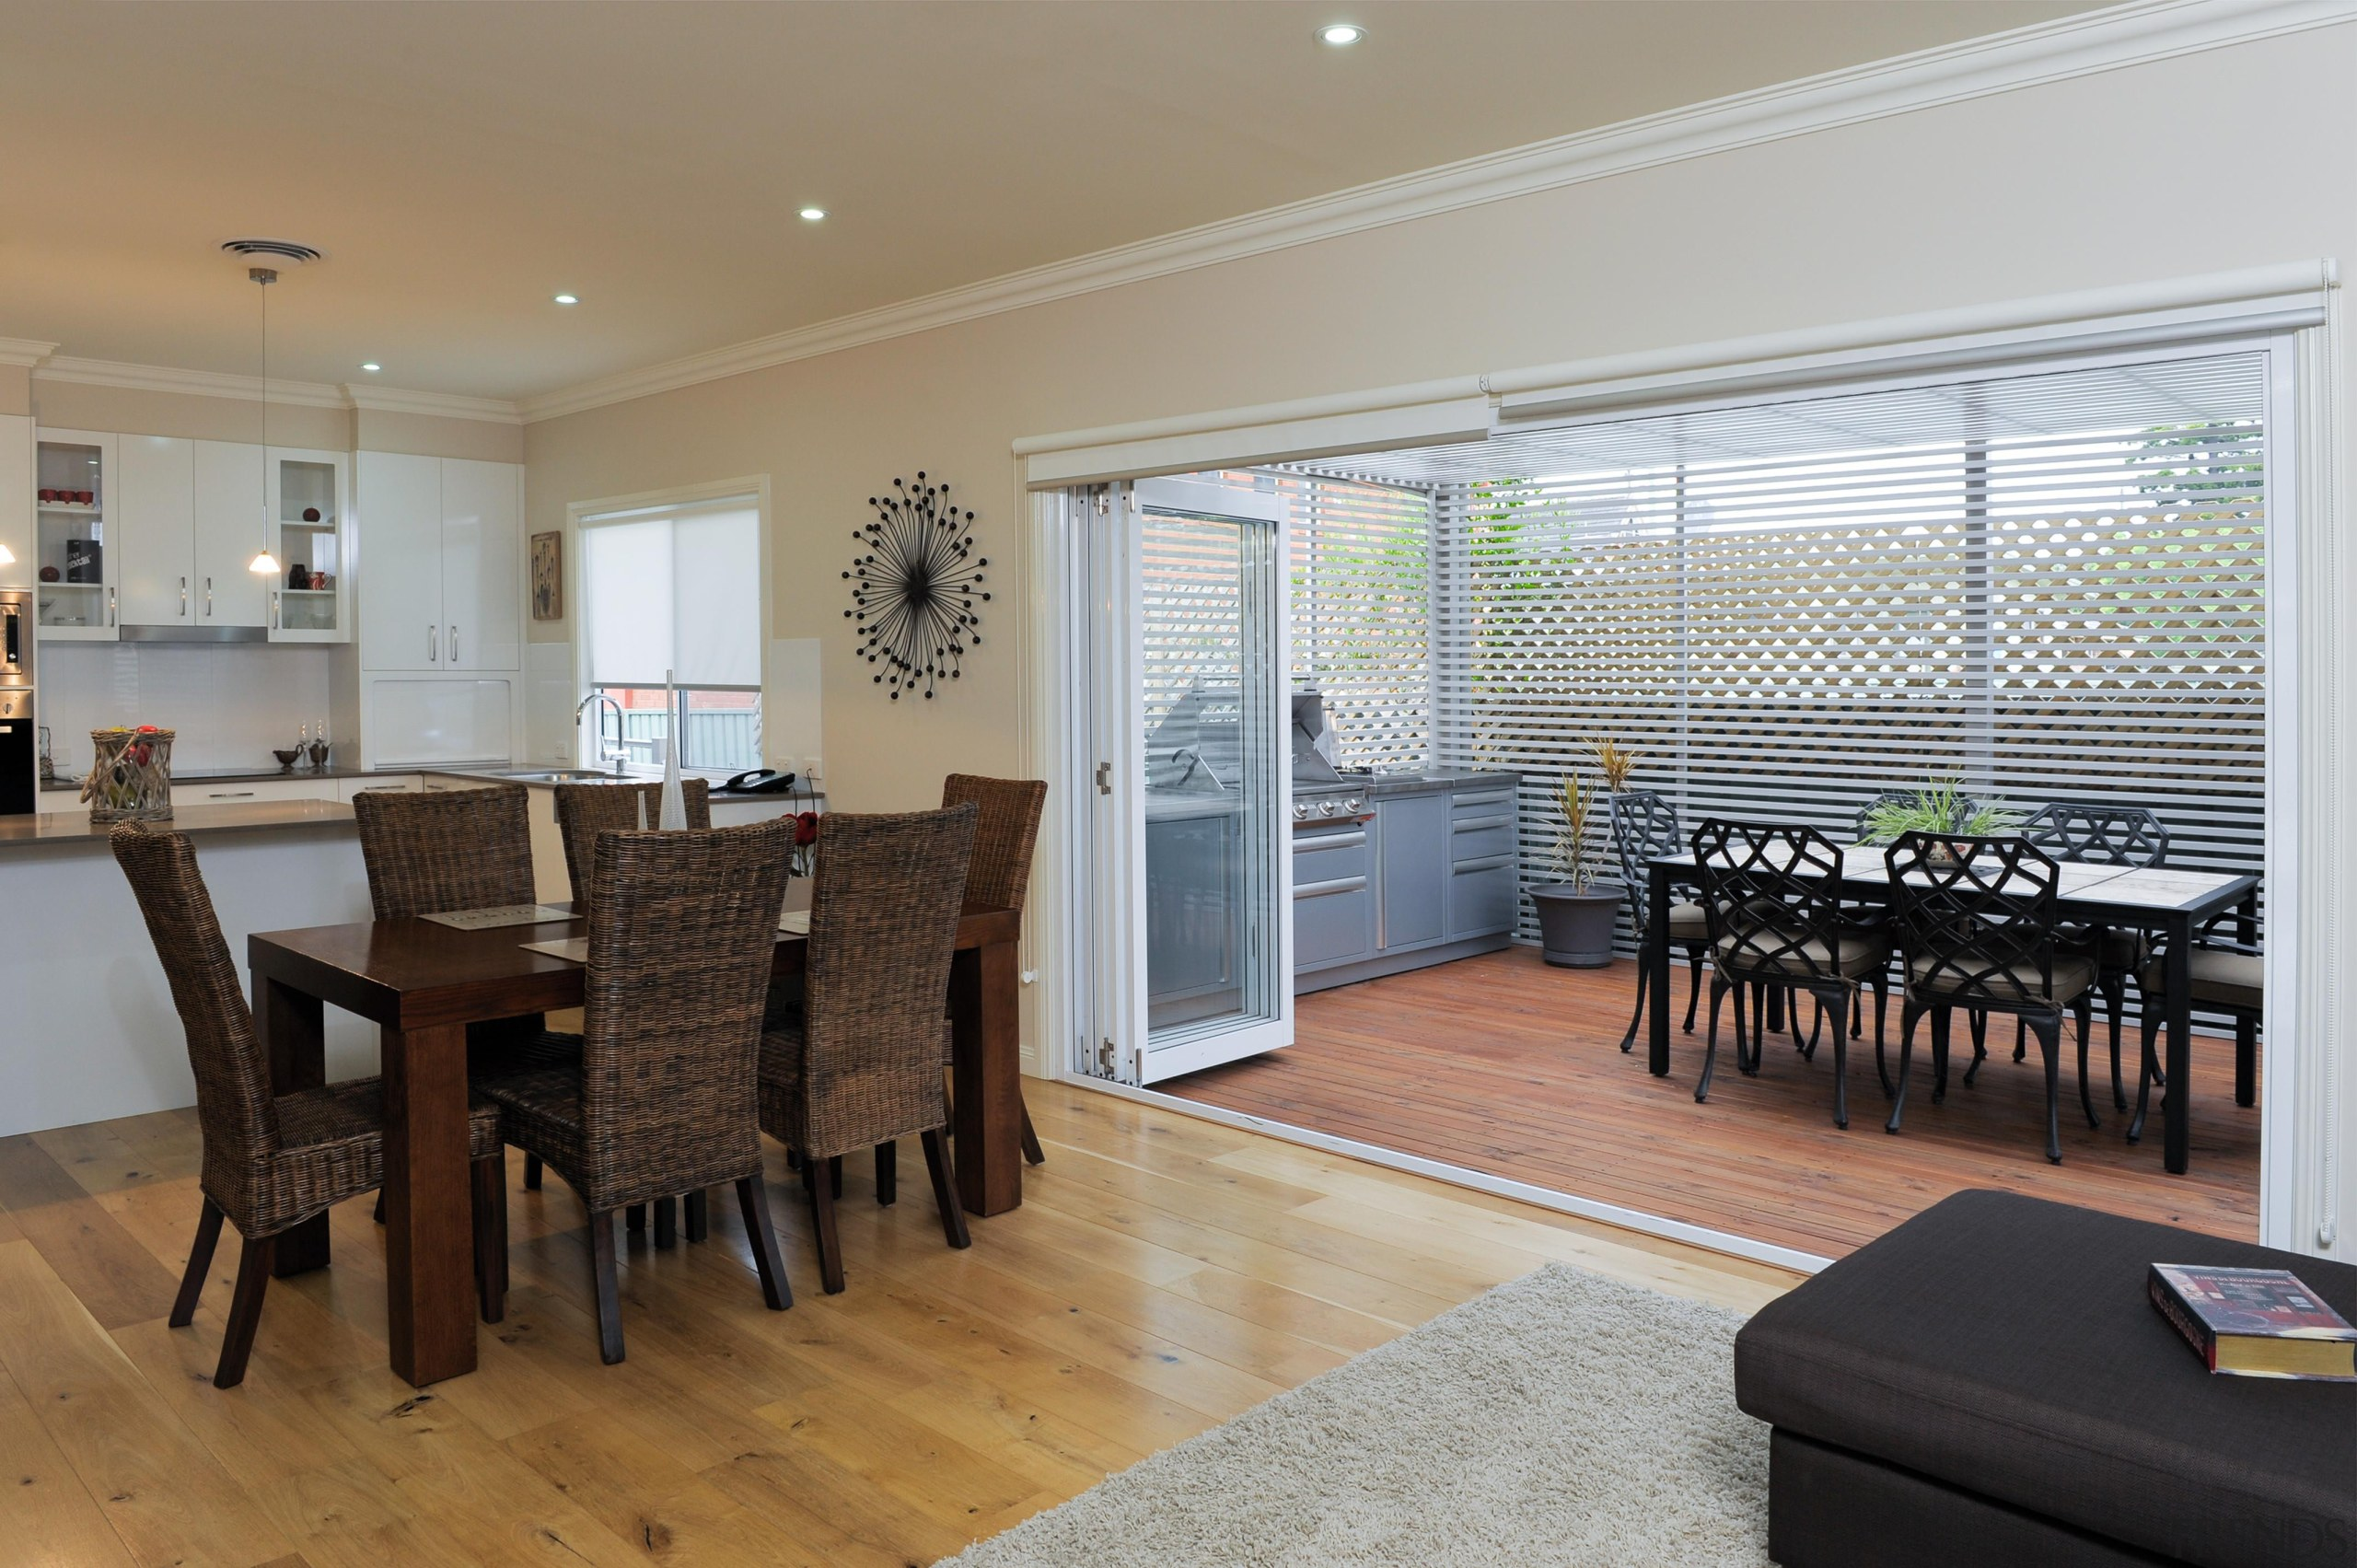 At Manor we believe in harmony - harmony dining room, flooring, home, interior design, property, real estate, room, window, gray